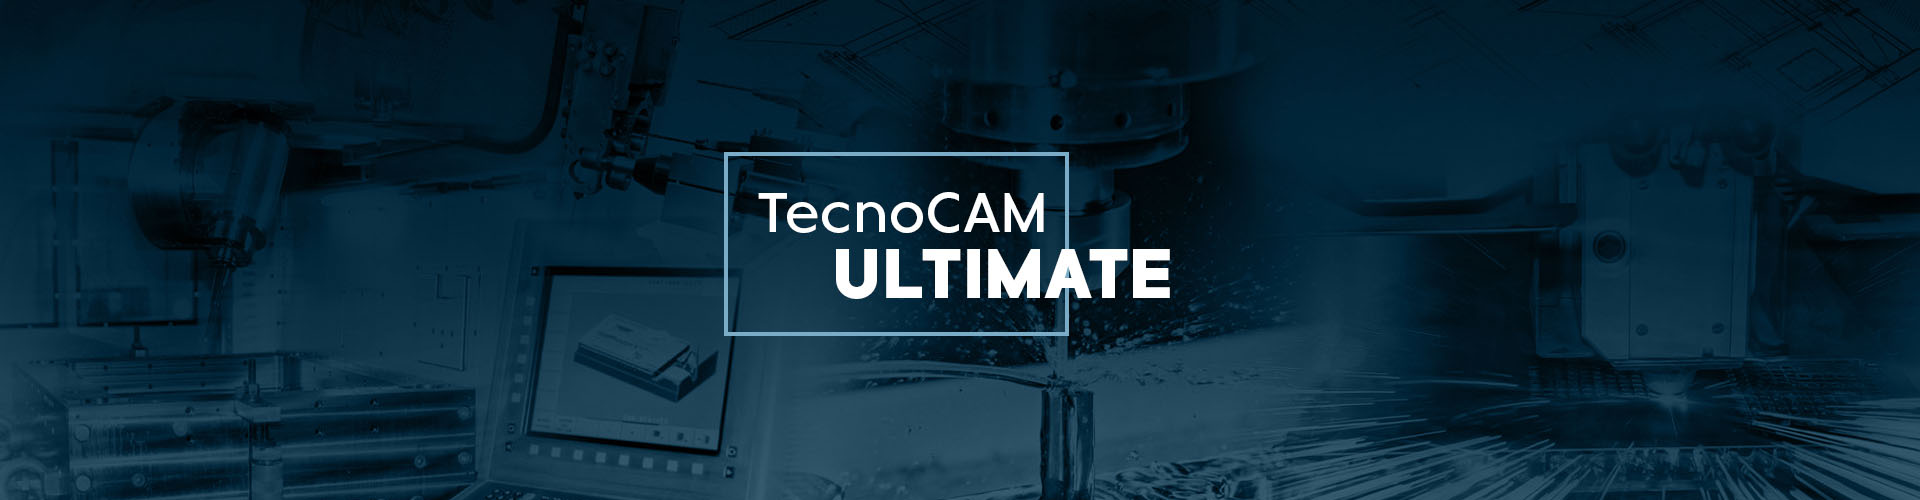 TecnoCAM ULTIMATE Software